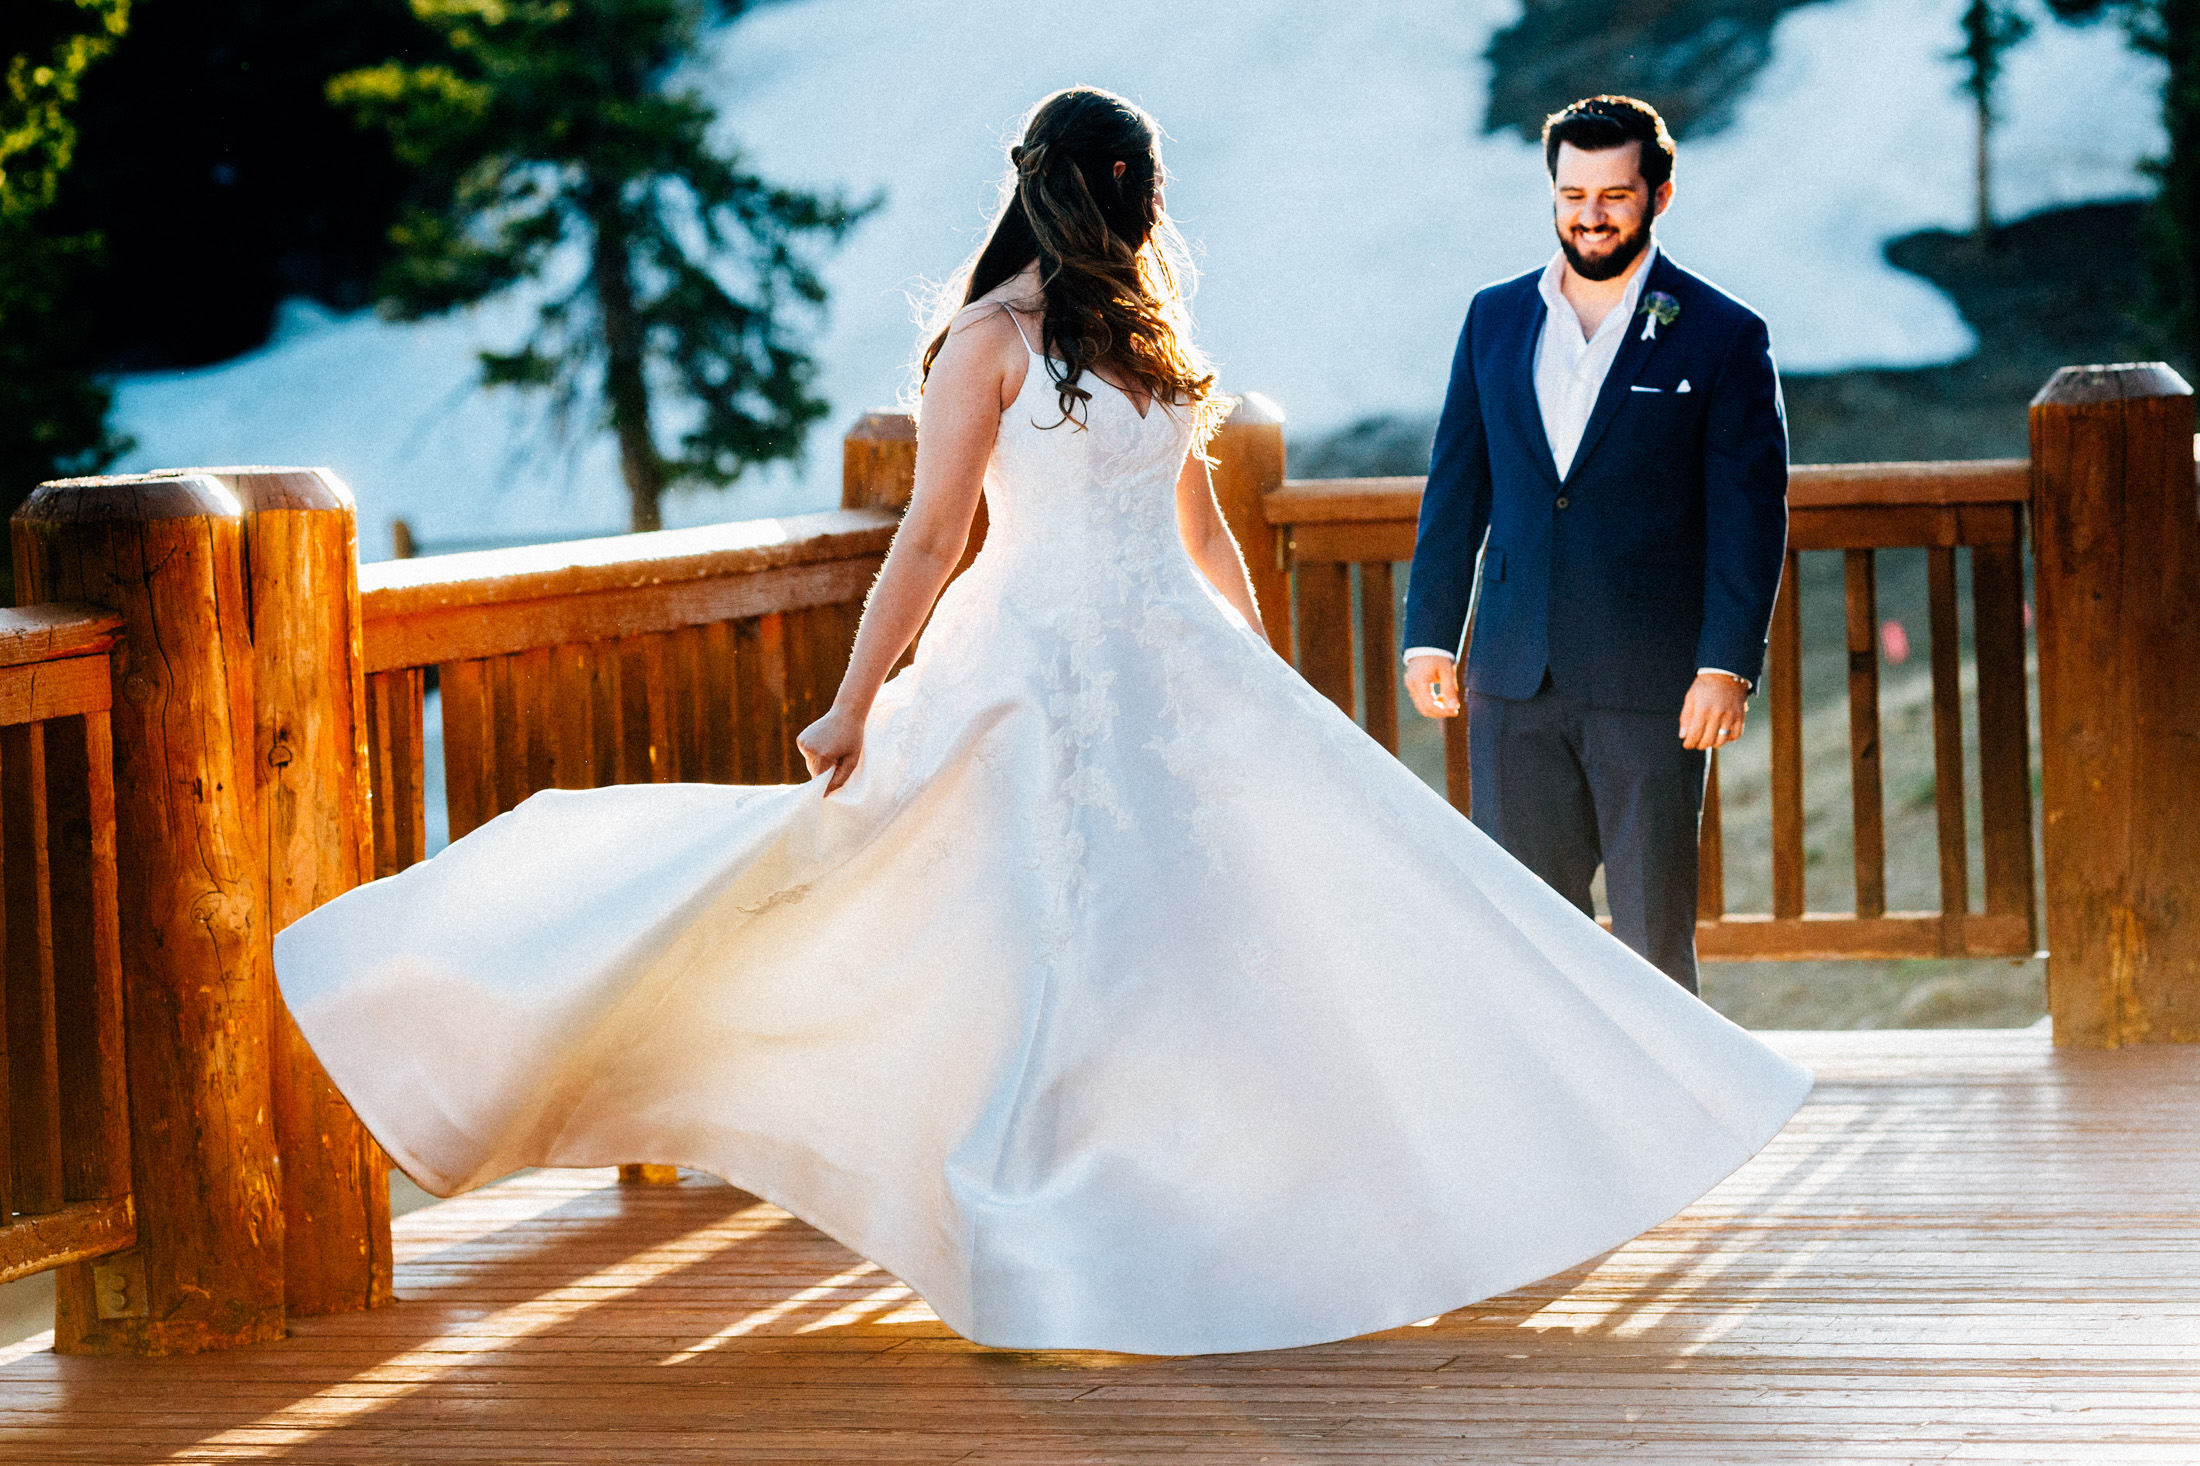 Bride twirls her dress for the groom on the deck at Timber Ridge Lodge.